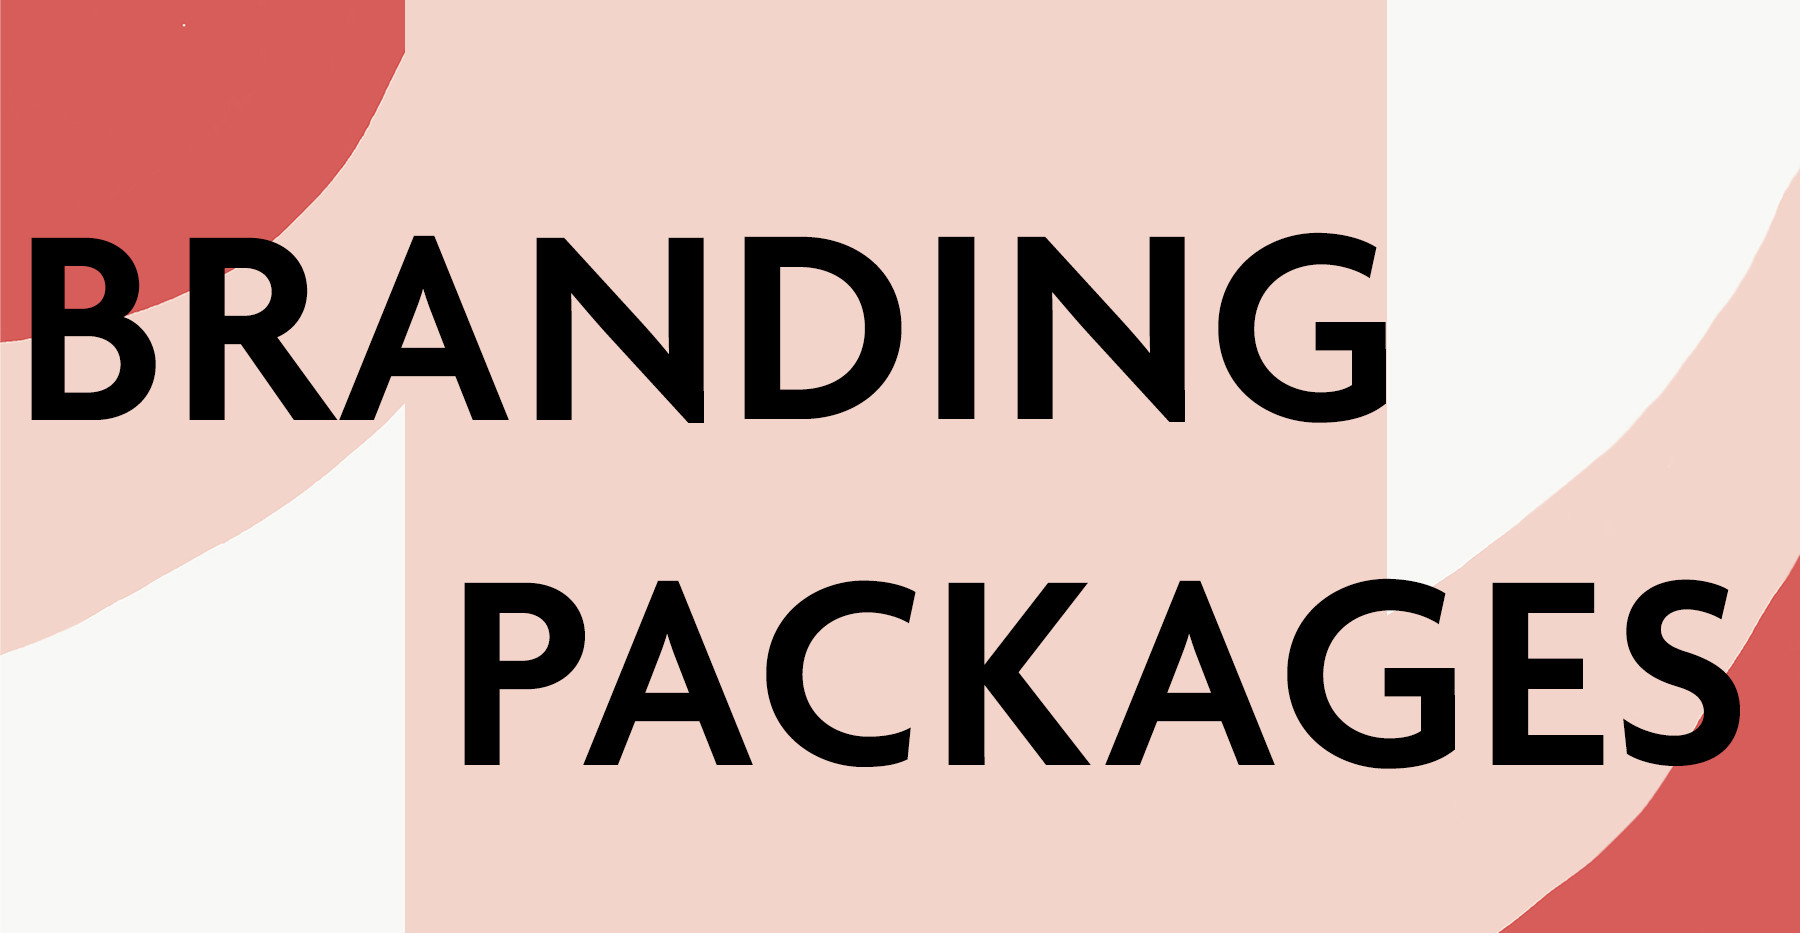 Branding Packages